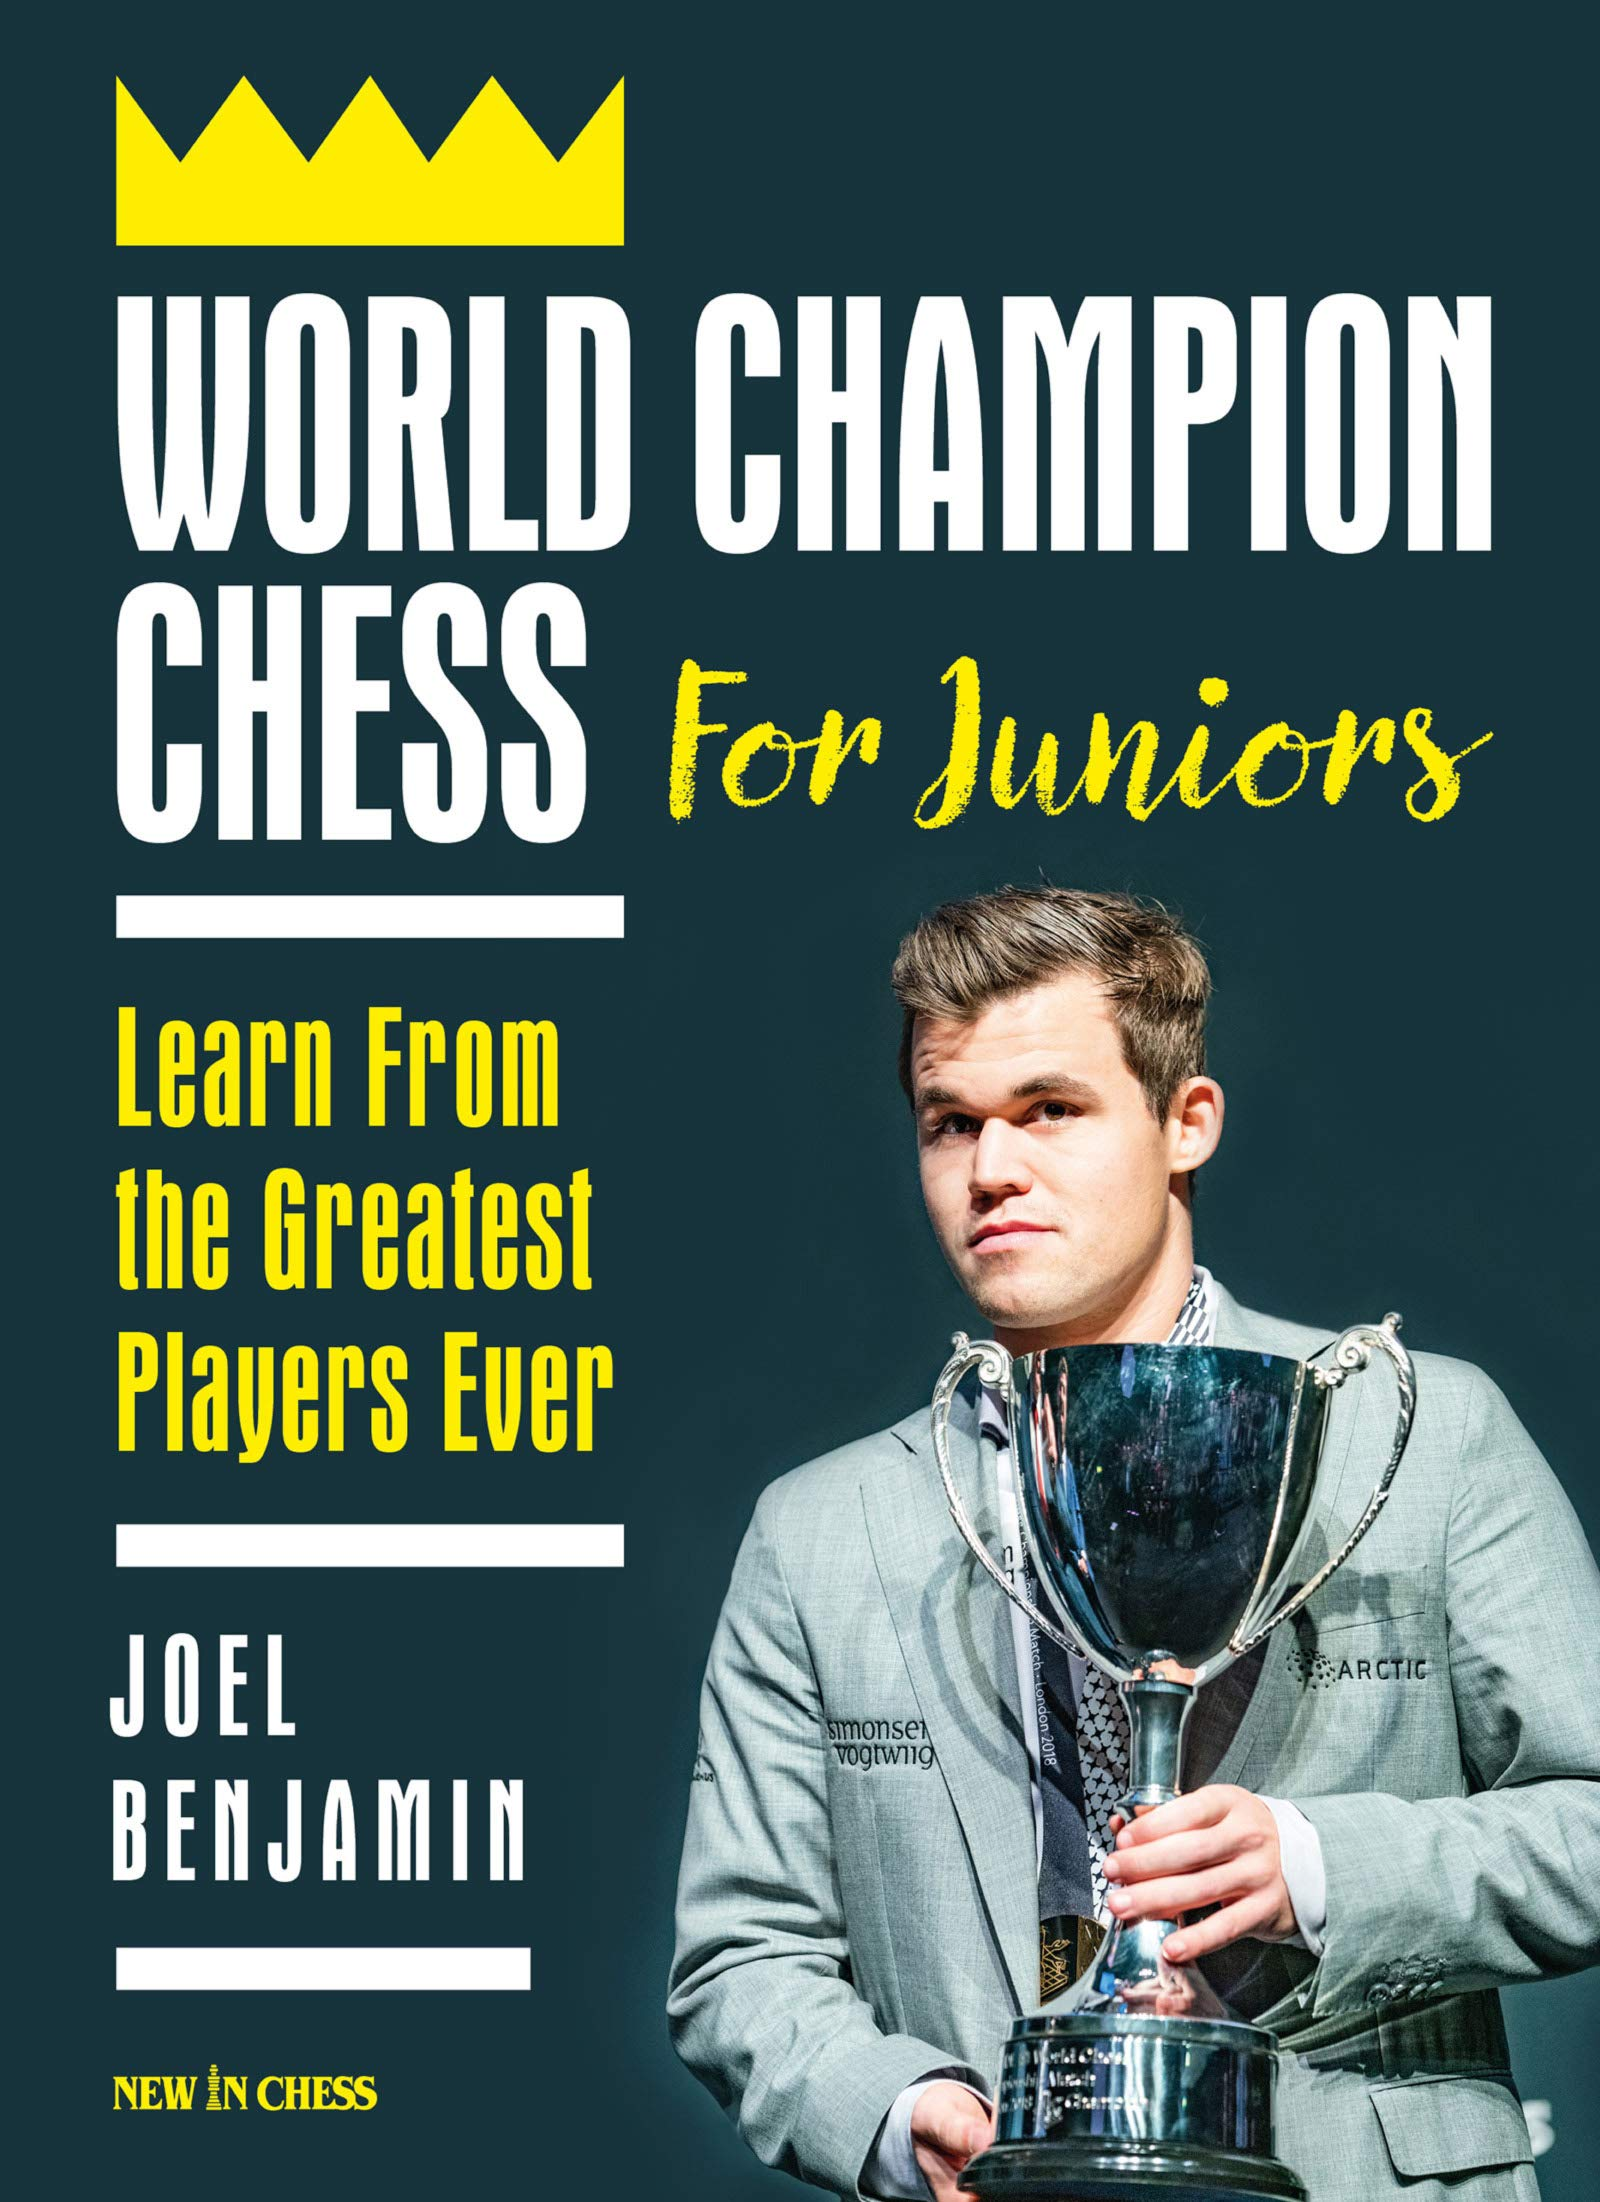 World Champion Chess for Juniors: Learn From the Greatest Players Ever, Joel Benjamin, New in Chess, 2020, ISBN-10 : 9056919199